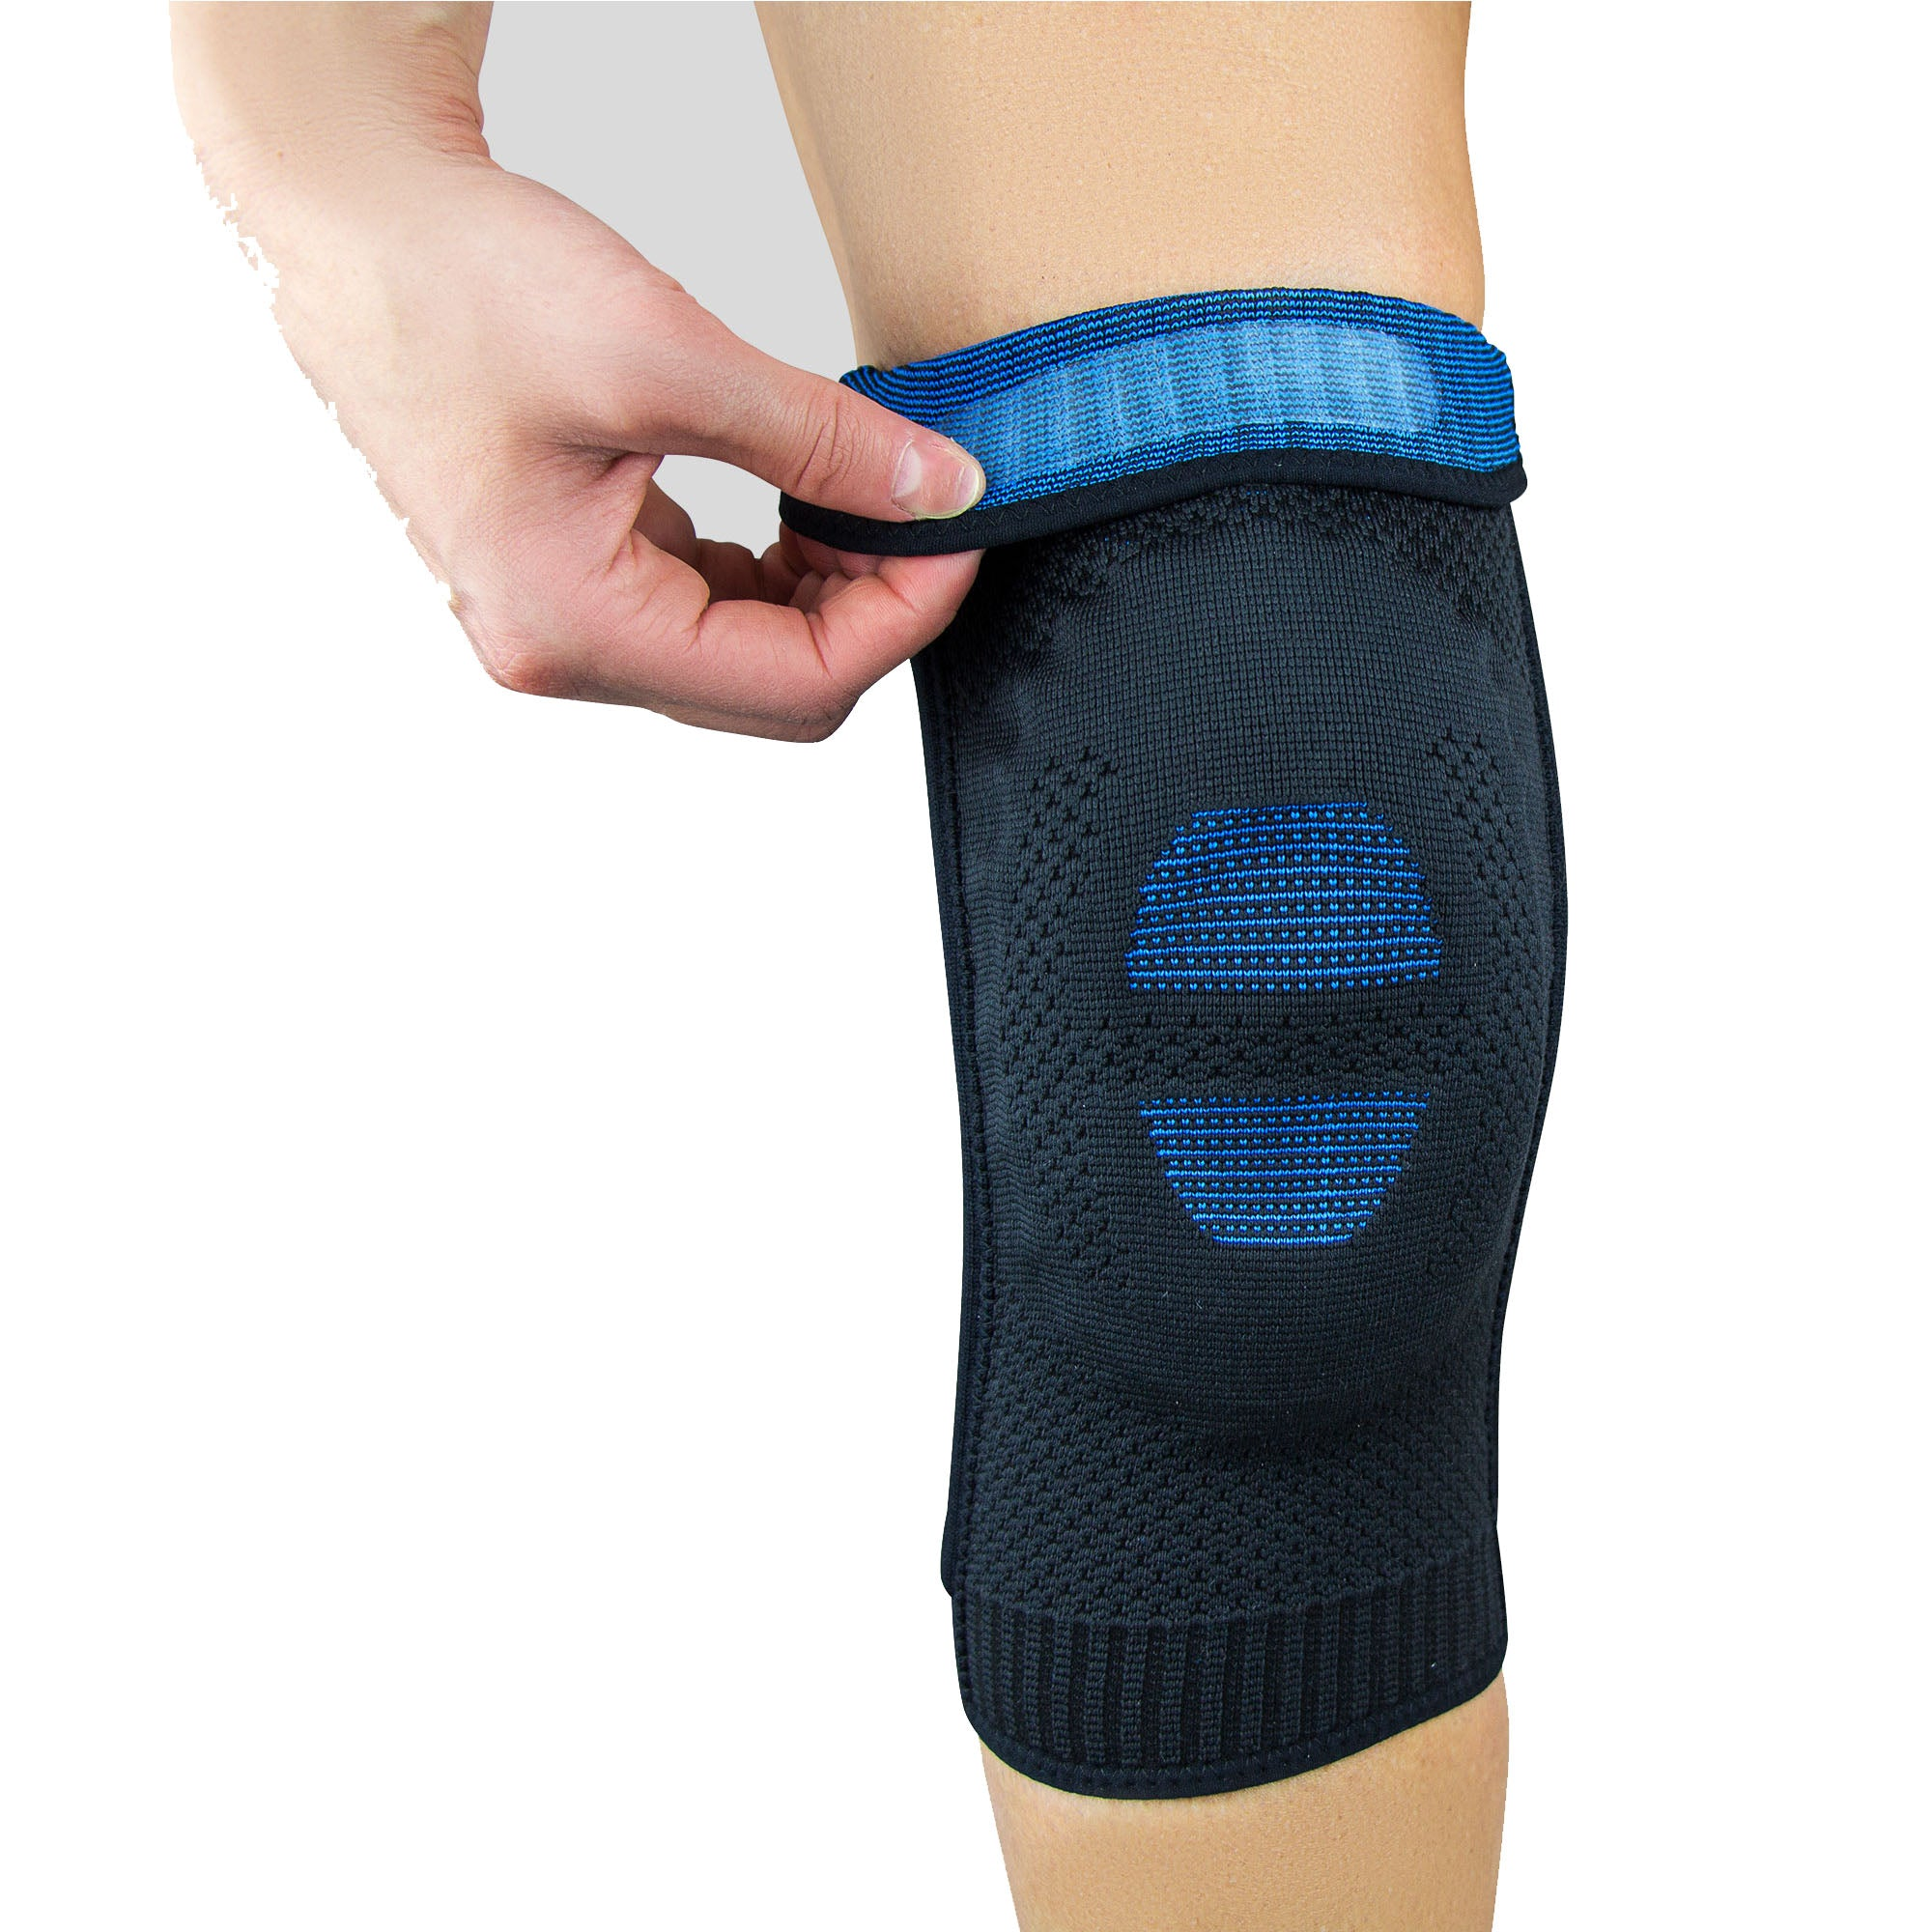 ZENSAH ELITE GEL COMPRESSION KNEE SLEEVES (PAIR)